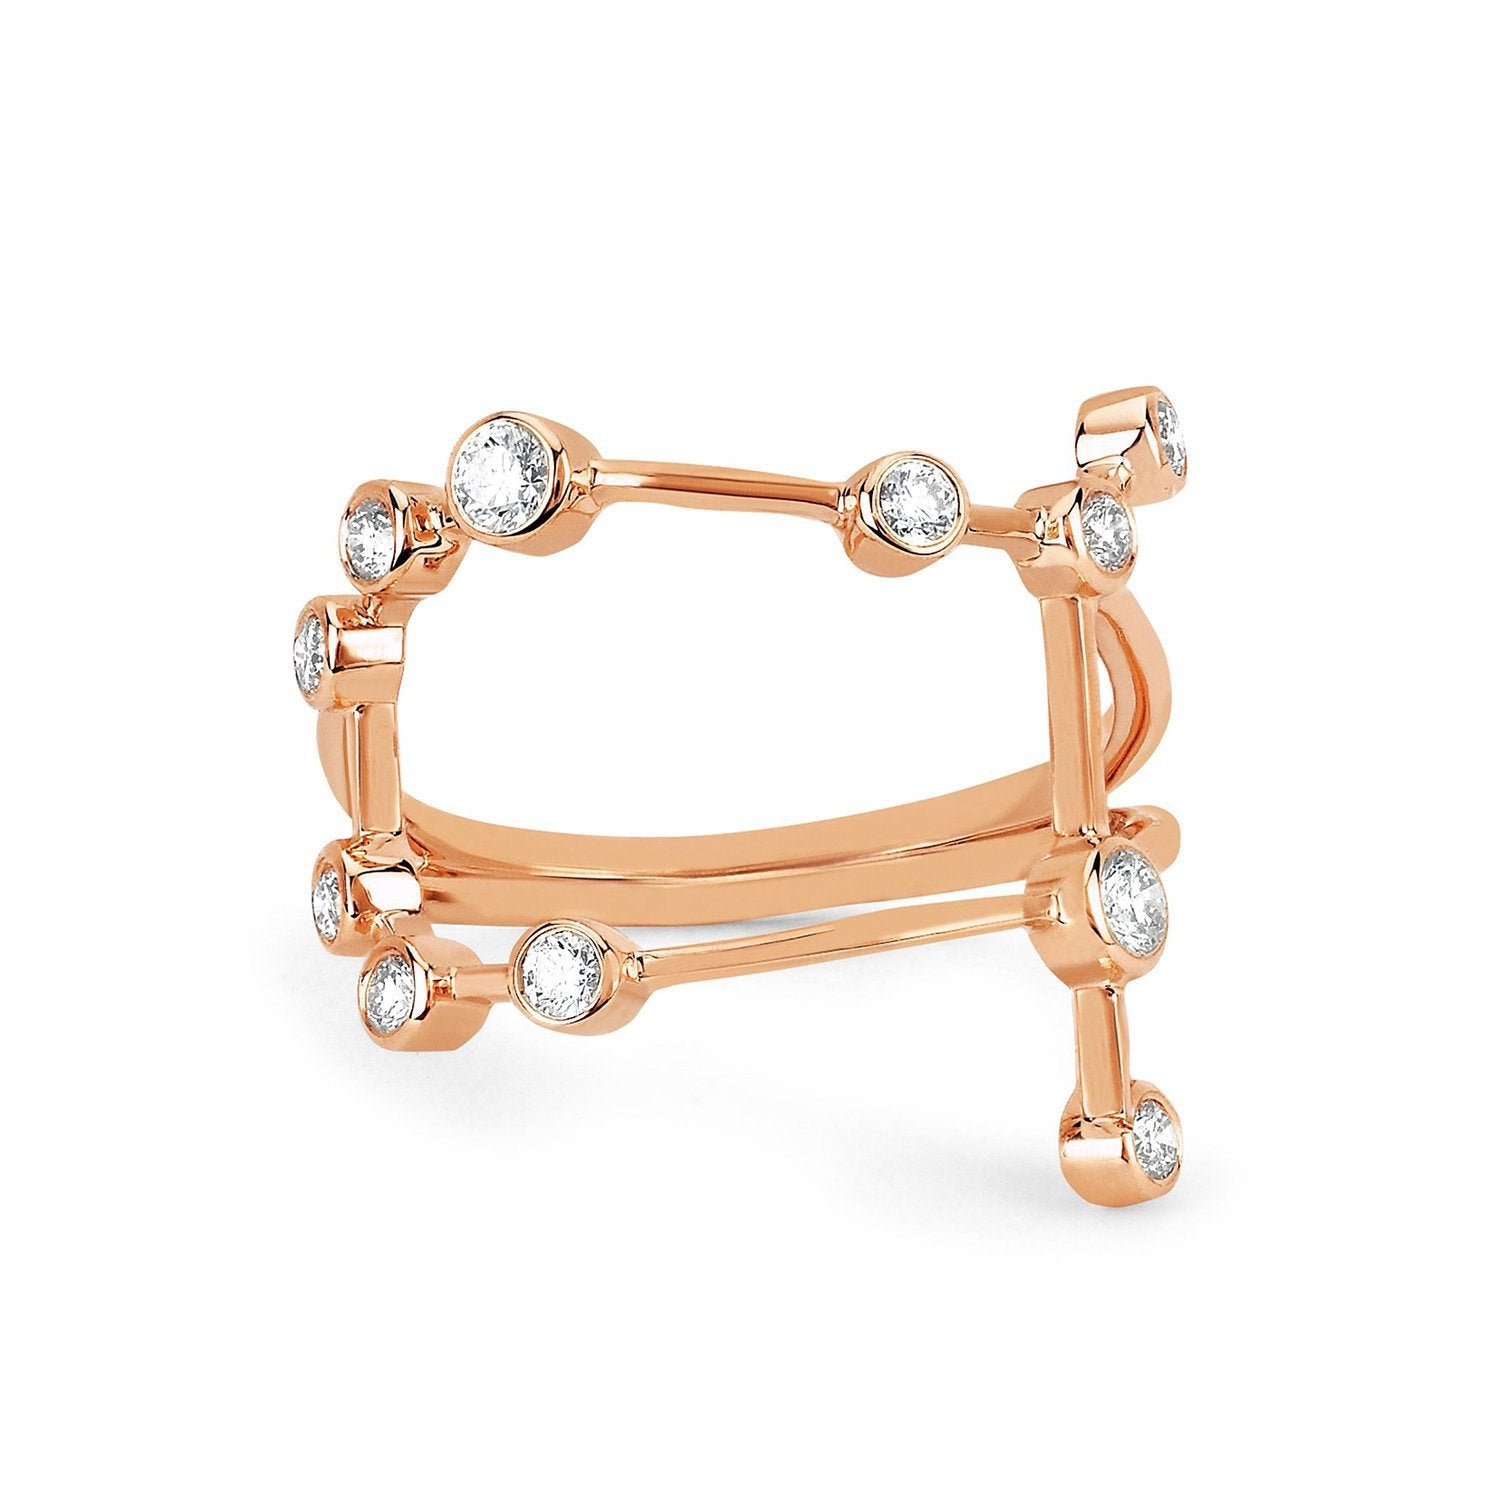 Gemini Constellation Ring